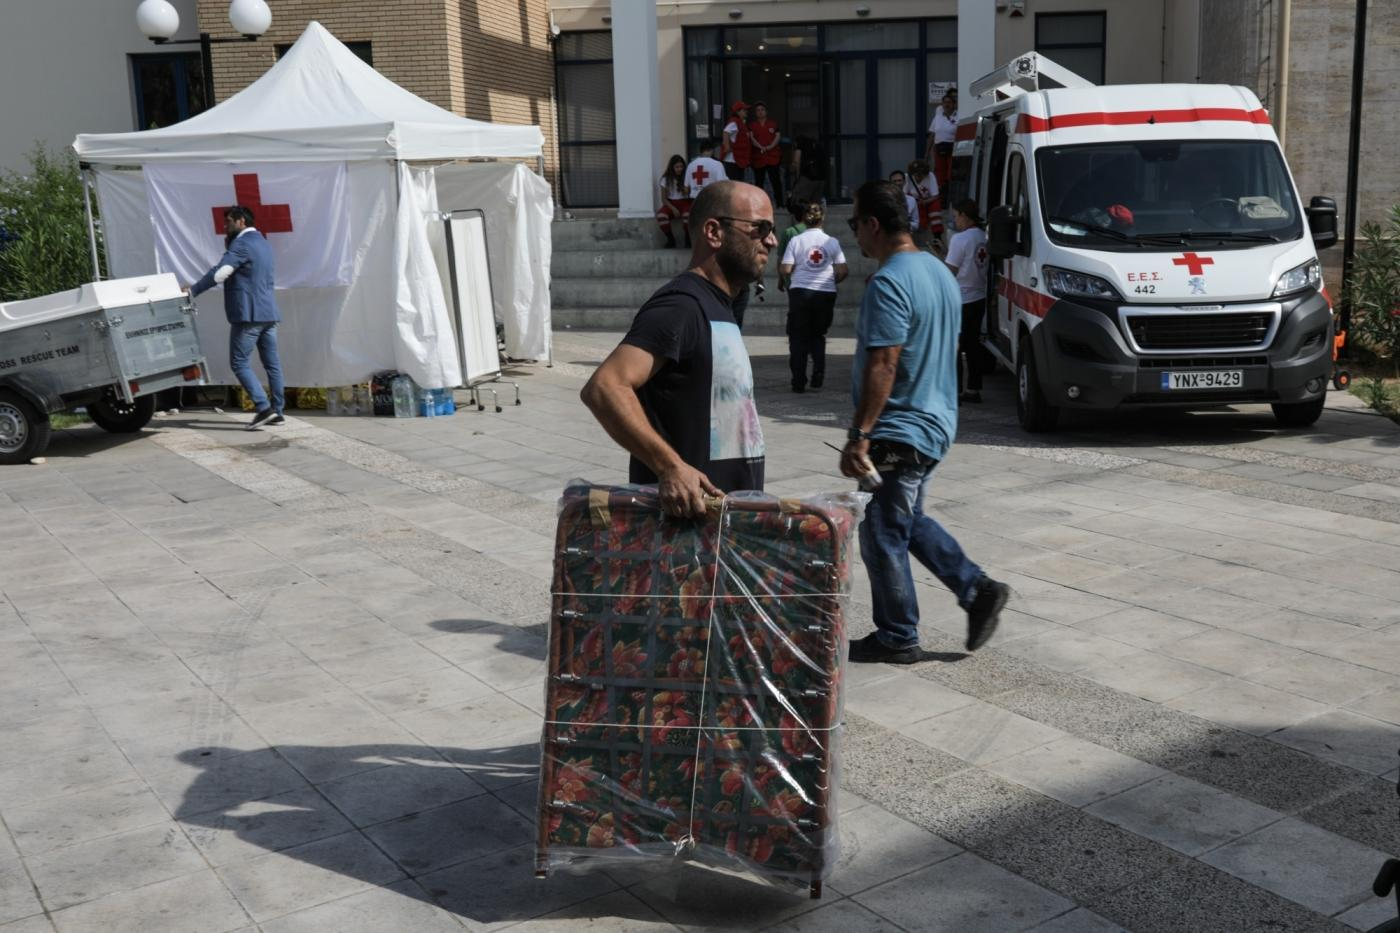 ATHENS, July 26, 2018 (Xinhua) -- A man carries a folding bed for people affected by wildfires to the city hall of Rafina, east of Athens, Greece, on July 26, 2018. As Greece mourned its deadliest tragedy caused by wildfires in over a decade with the toll in the seaside city of Attica rising to 82 on Thursday, volunteers poured in to help heal the wounds. (Xinhua/Lefteris Partsalis/IANS) by .